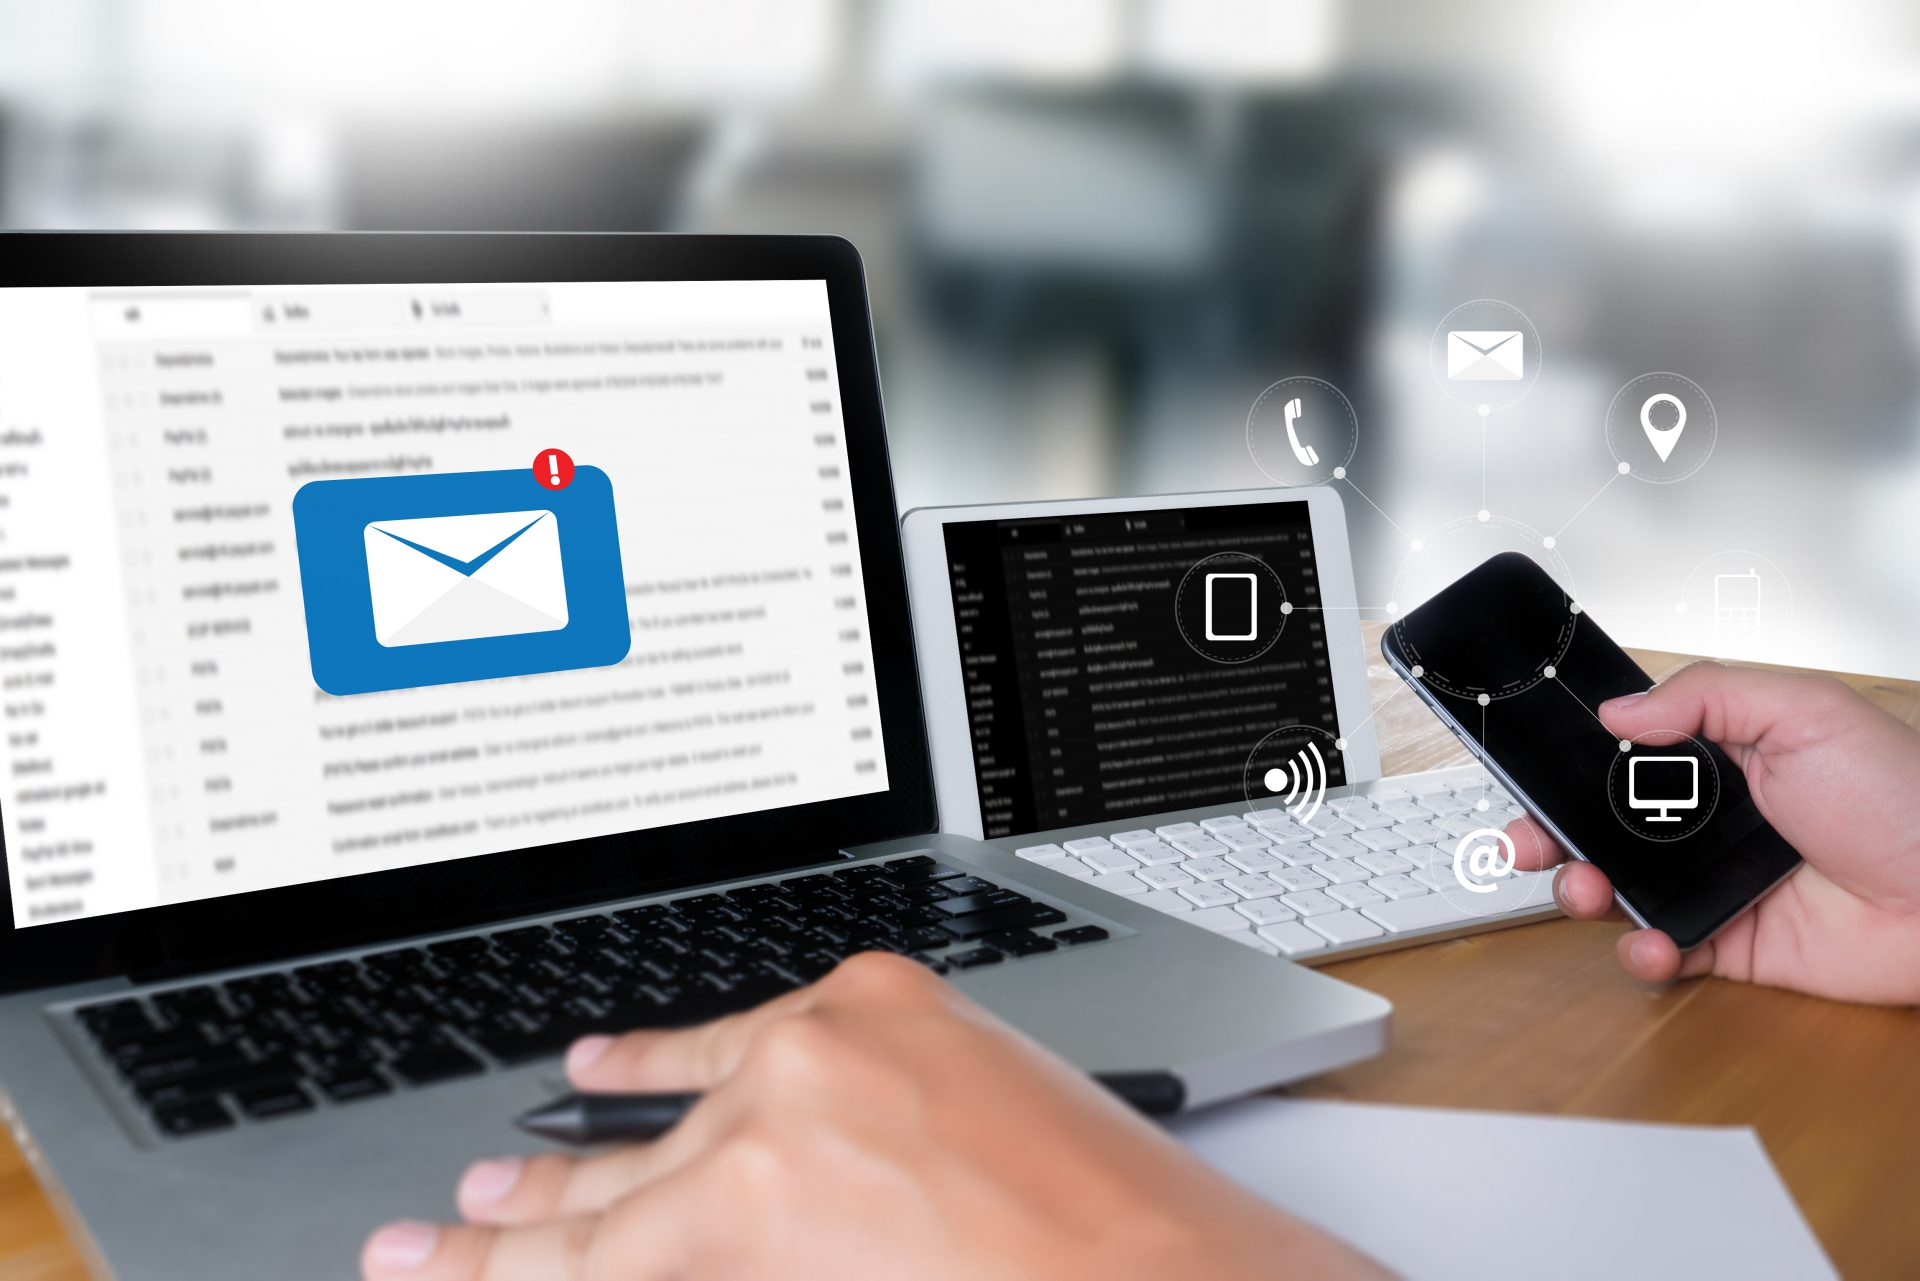 5 Tips on Writing A More Effective Subject Line